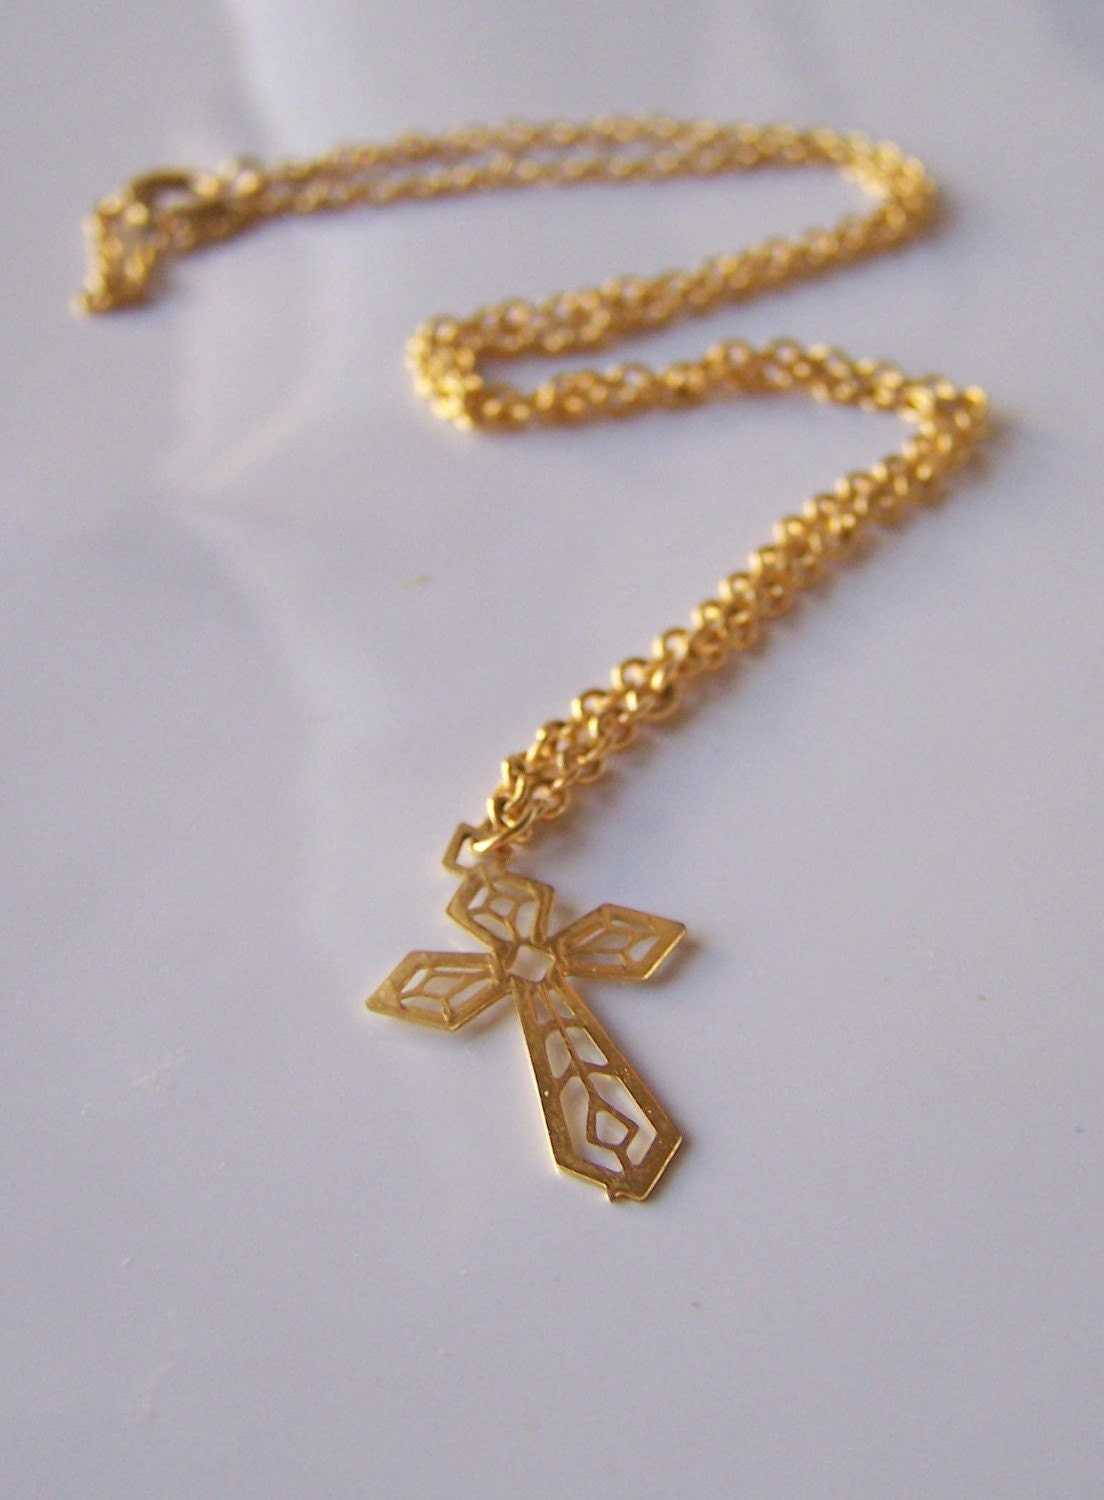 Etsy reduced cross necklace filigree gold cross by alysbeads for Vintage sites like etsy